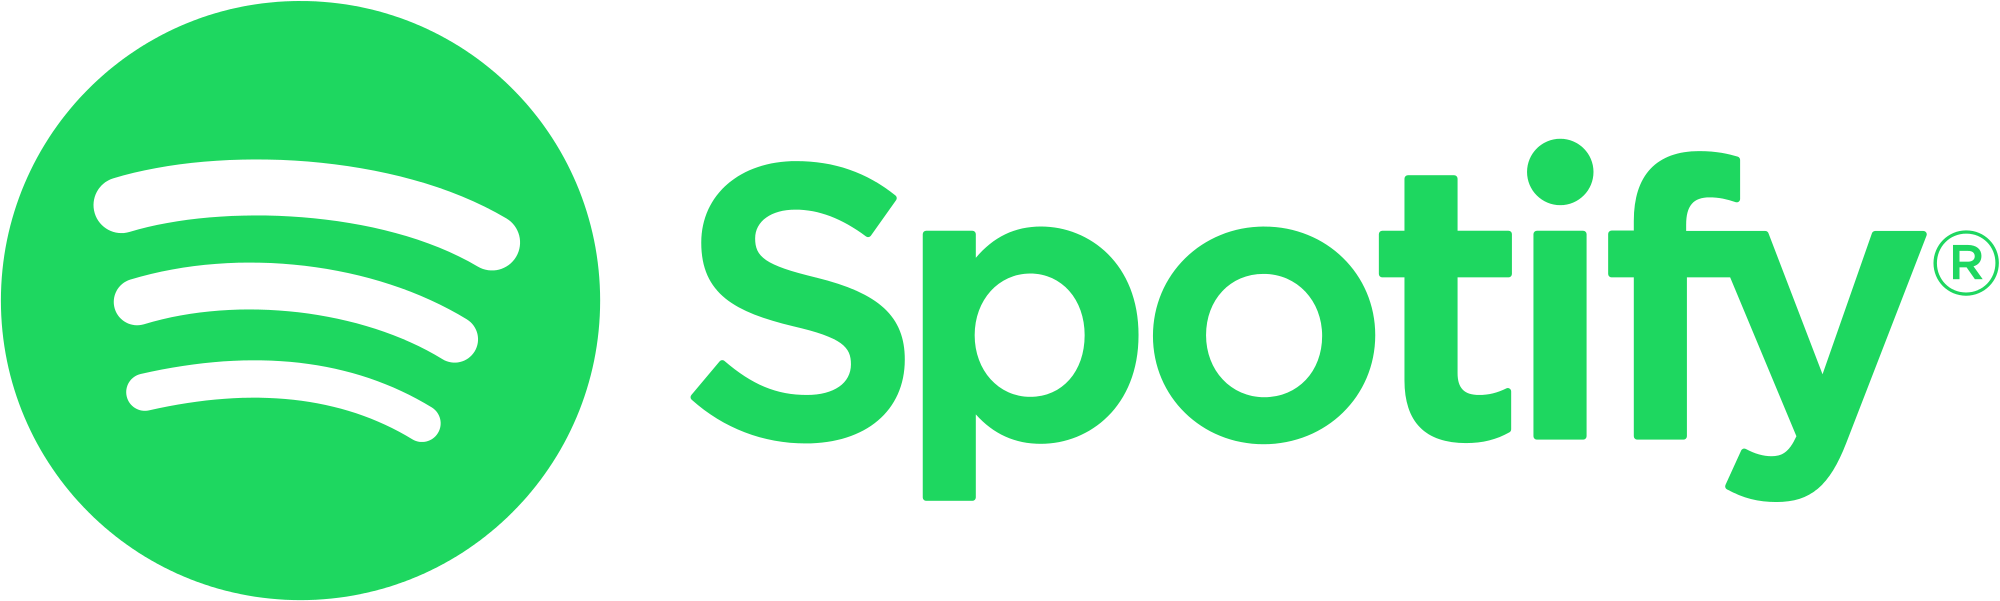 free download Text svg. File spotify logo with